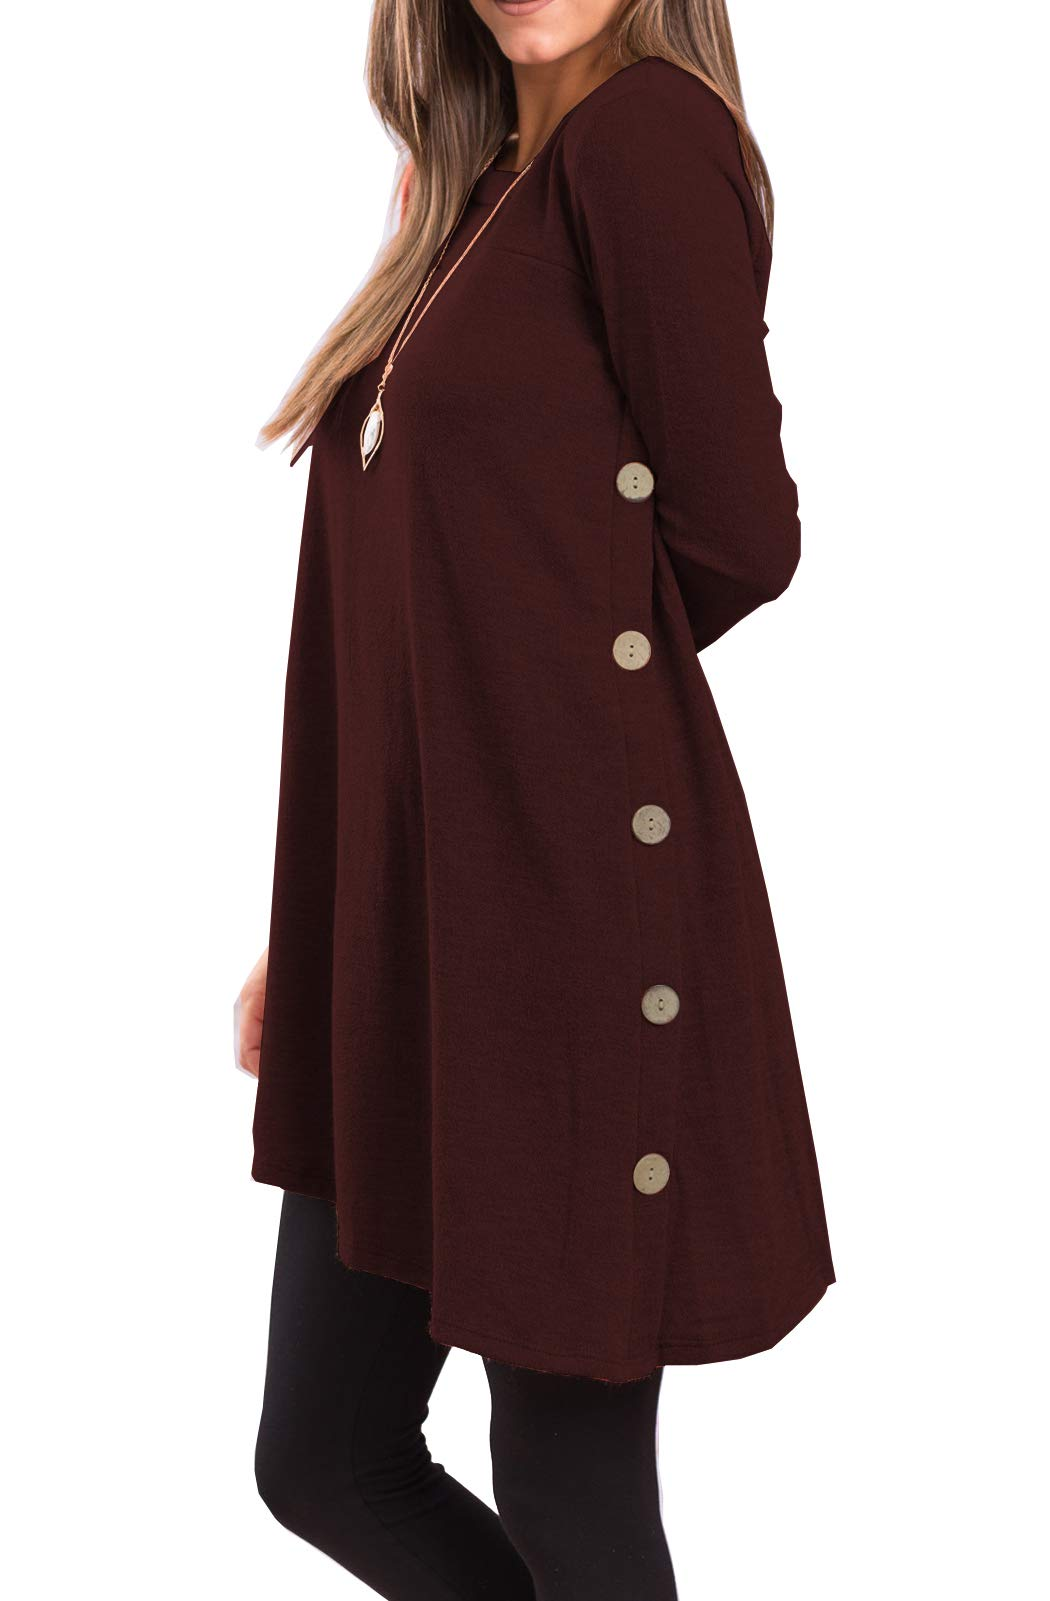 Sweater Dress - Women's Long Sleeve Pleated Loose Swing Casual Dress With Pockets Knee Length